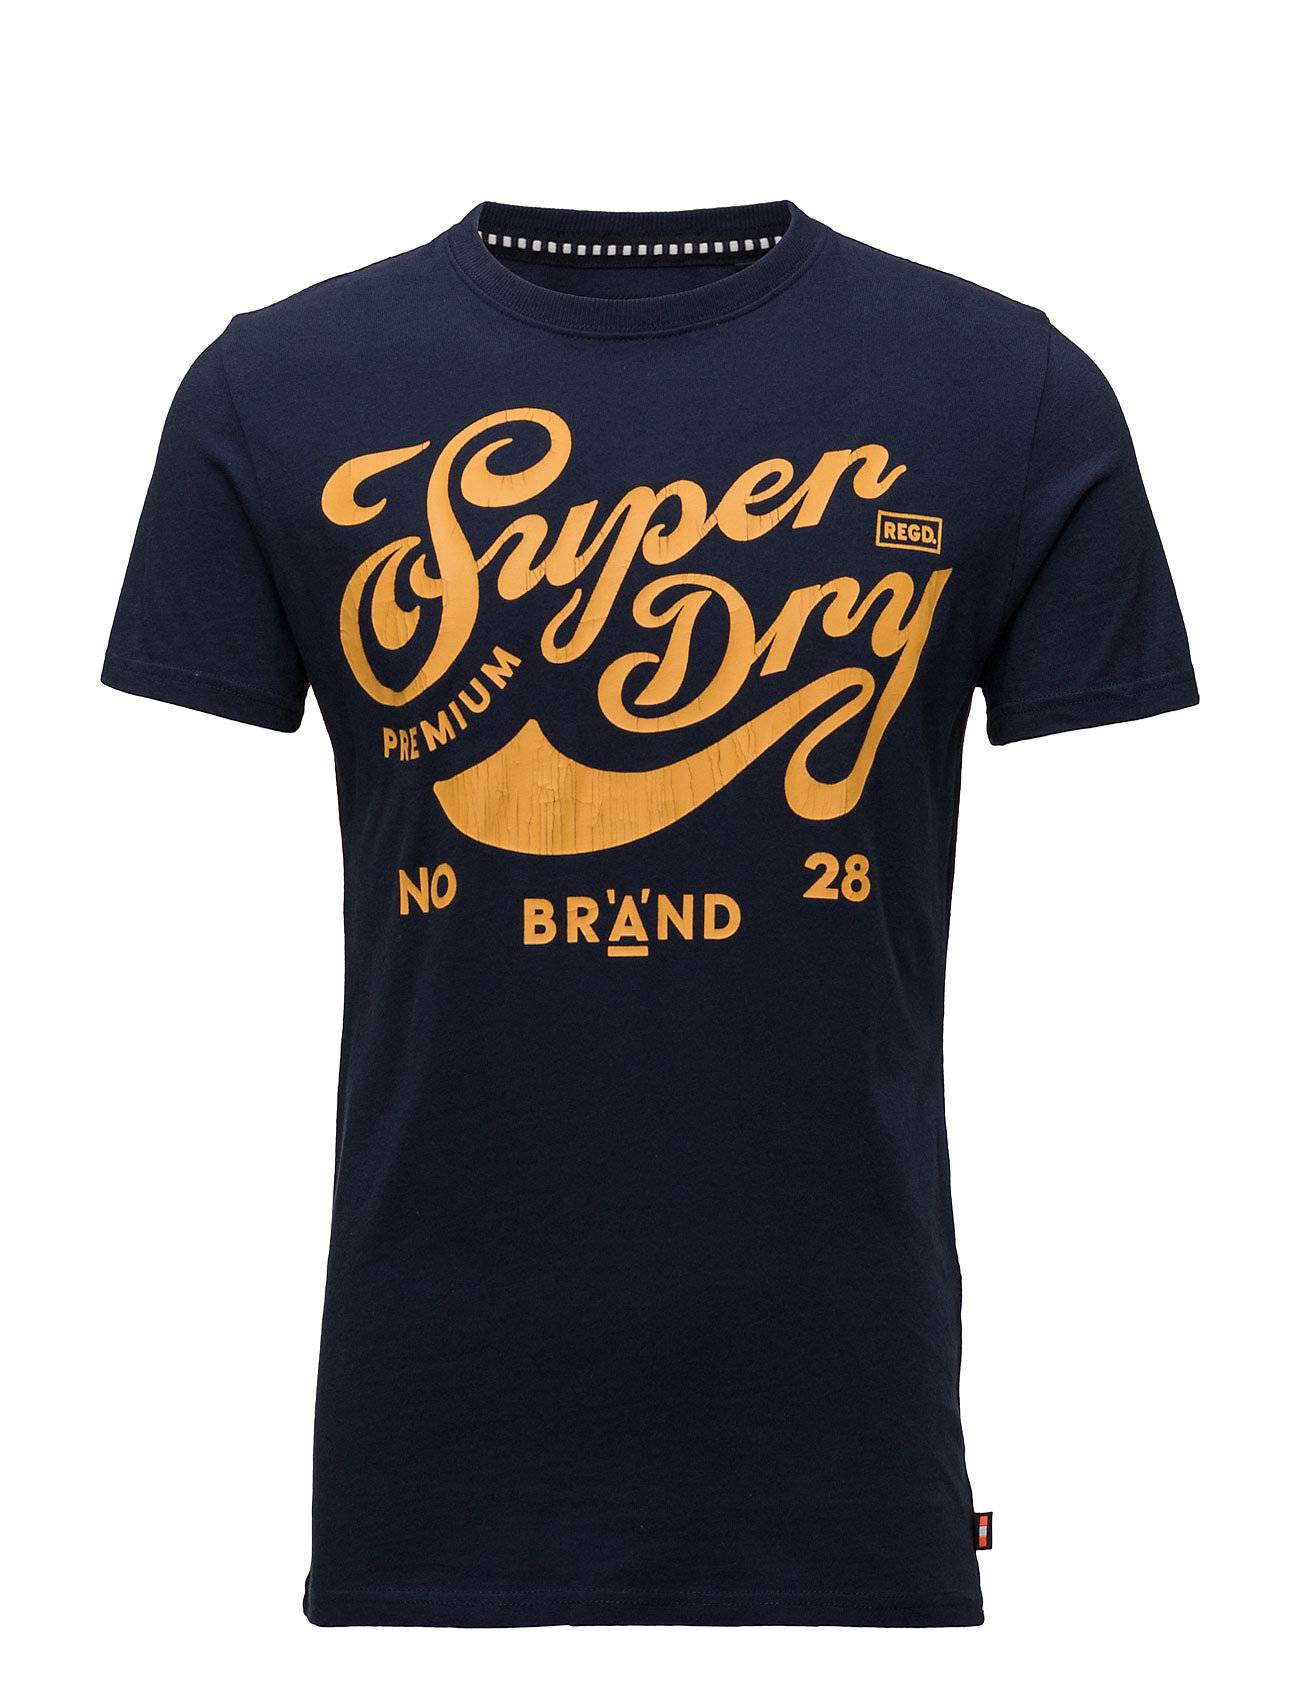 Superdry Brand A Tee